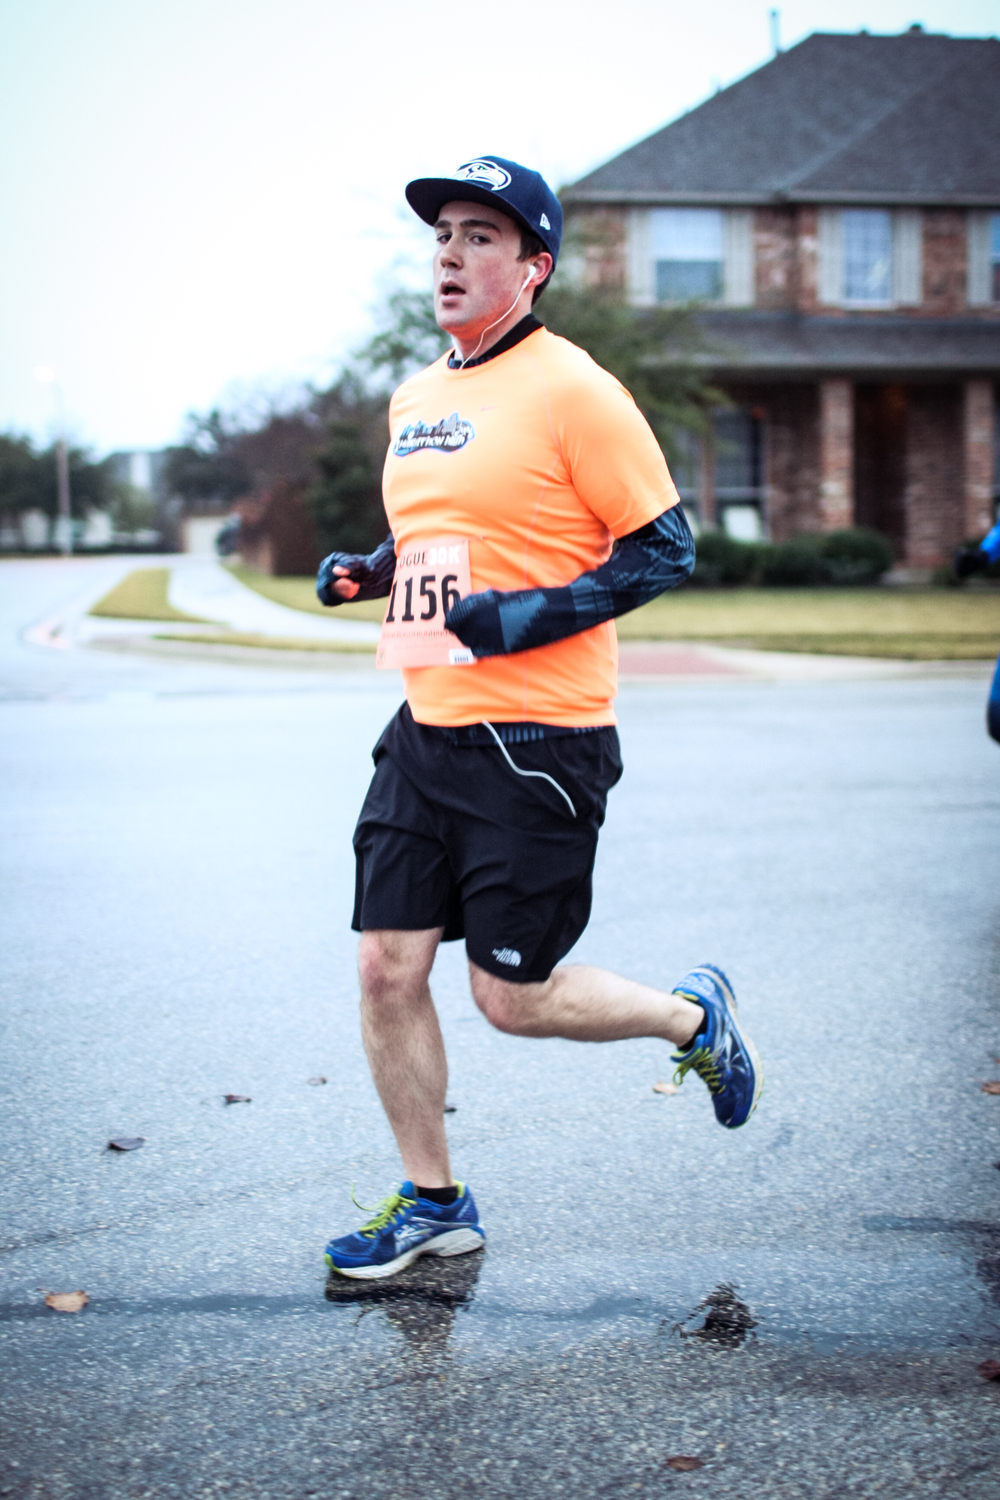 Mr. Kepner at the Rogue Distance Festival 30k. Photo credit AzulOx Photography